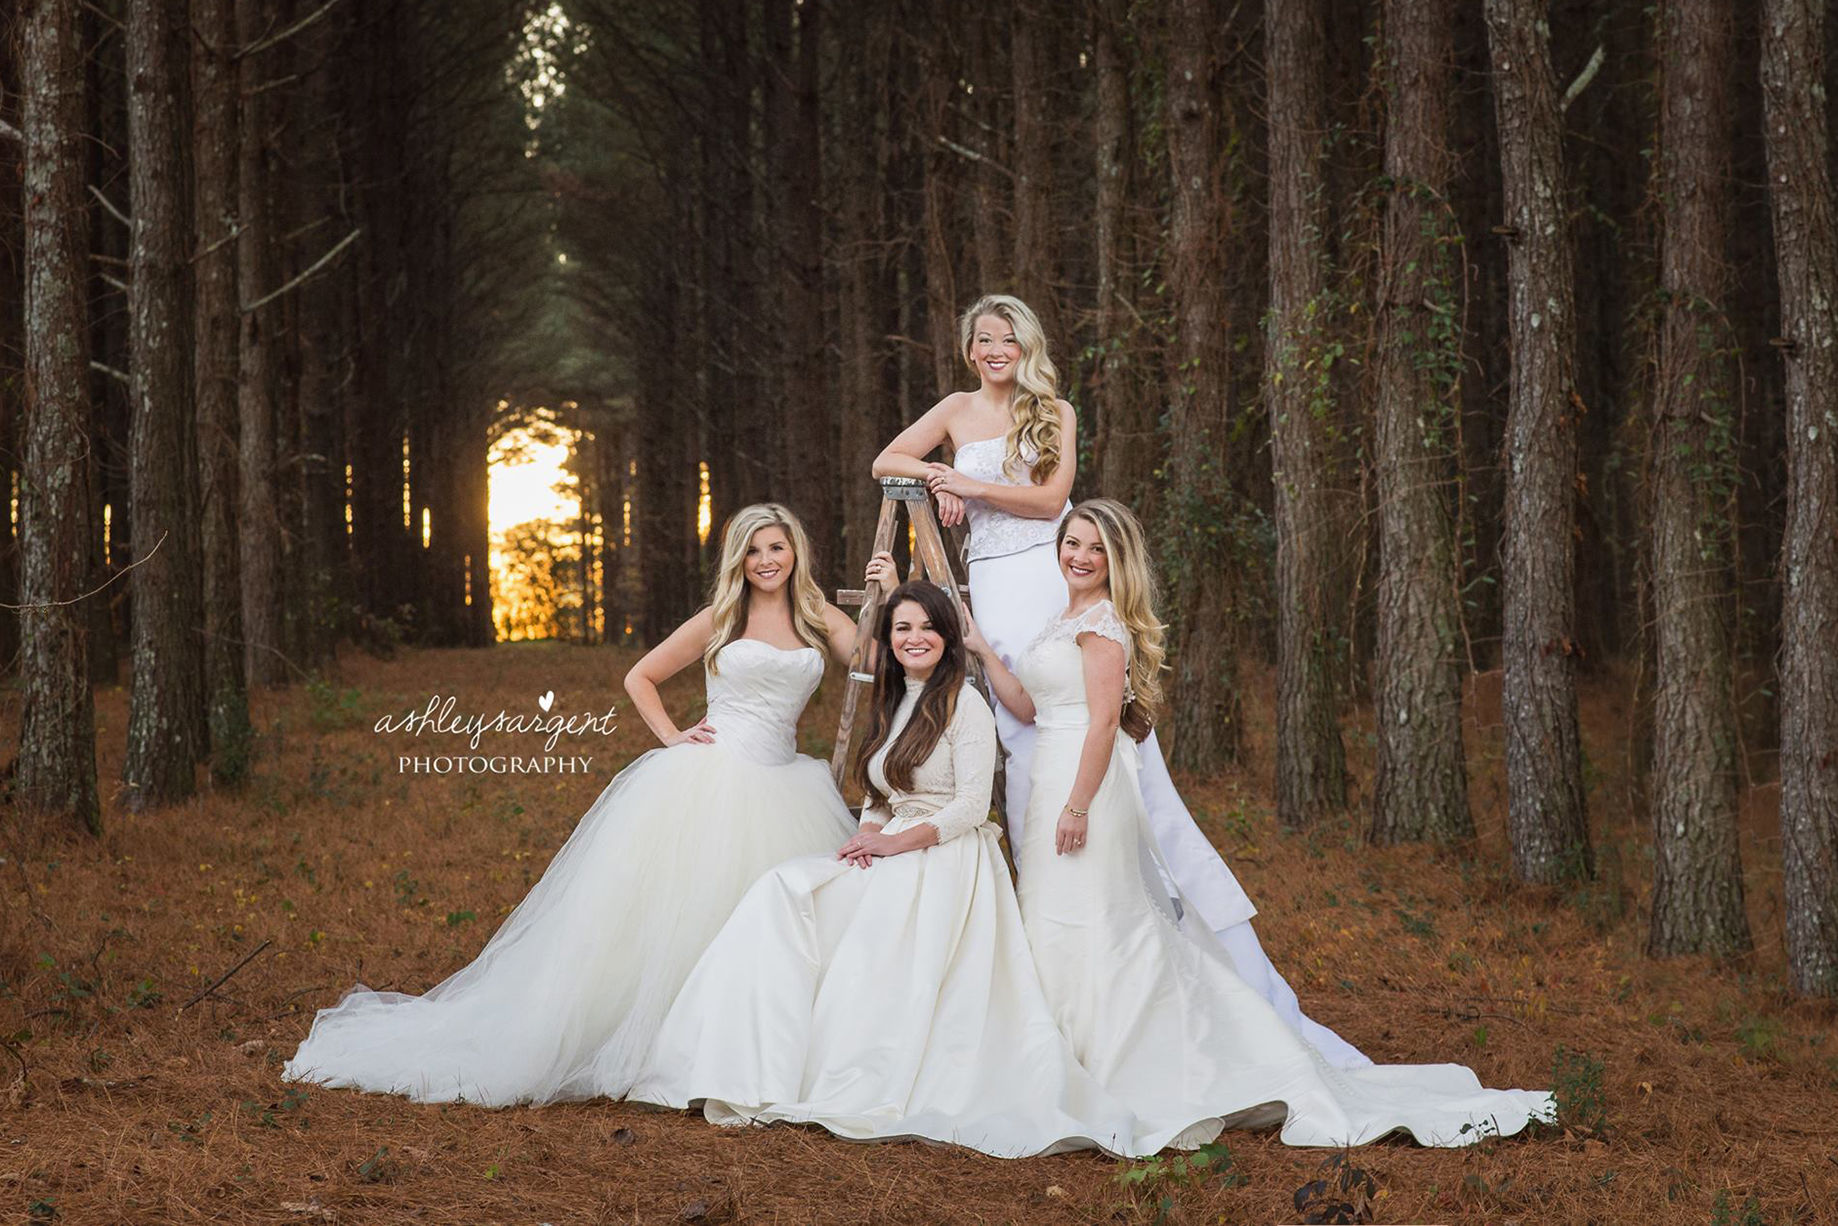 Single Mom Surprised by Daughters with Stunning Wedding Dress Photo Years in the Making